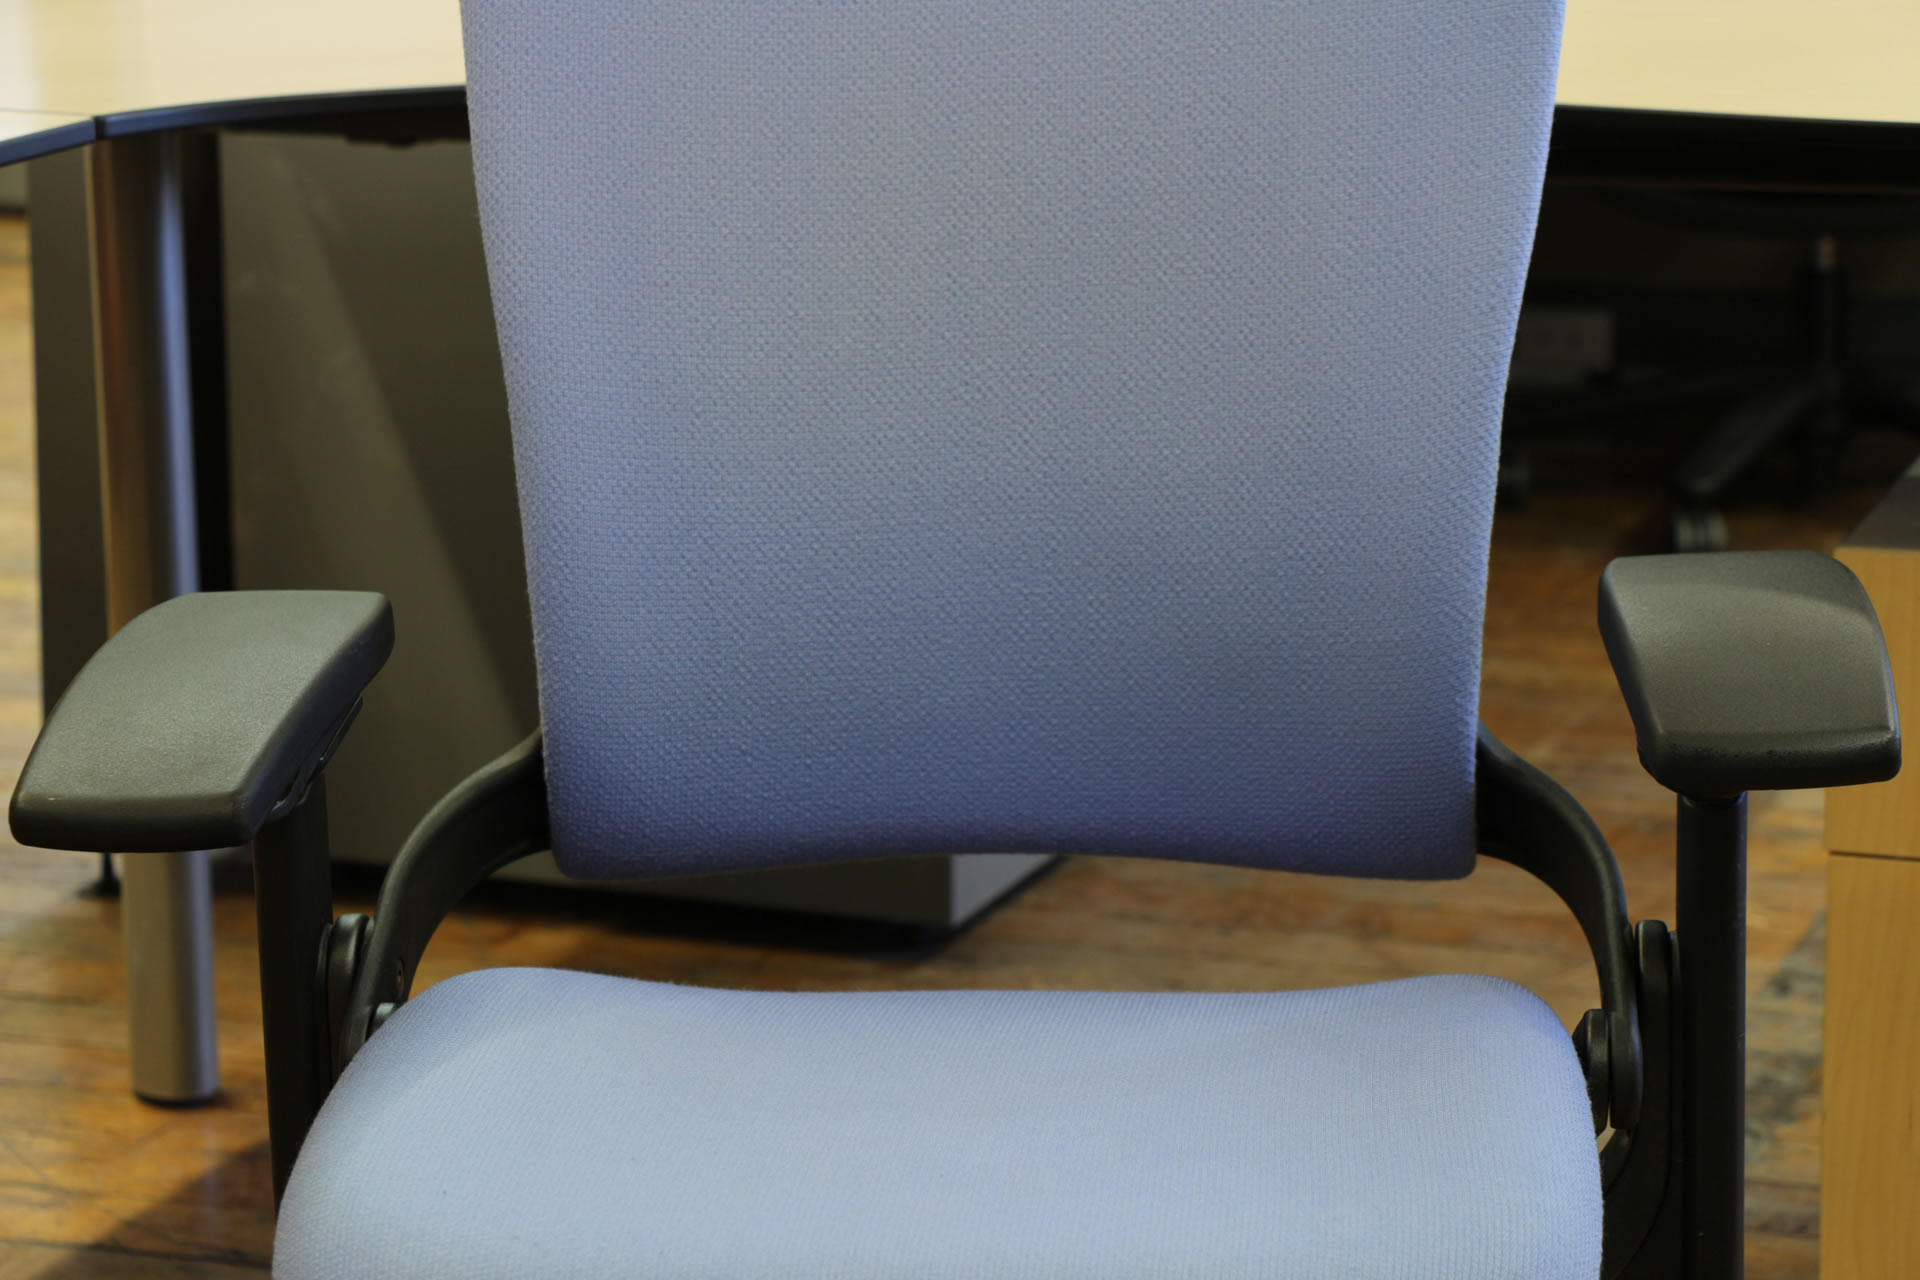 allsteel task chair glider chairs on sale sum work  peartree office furniture